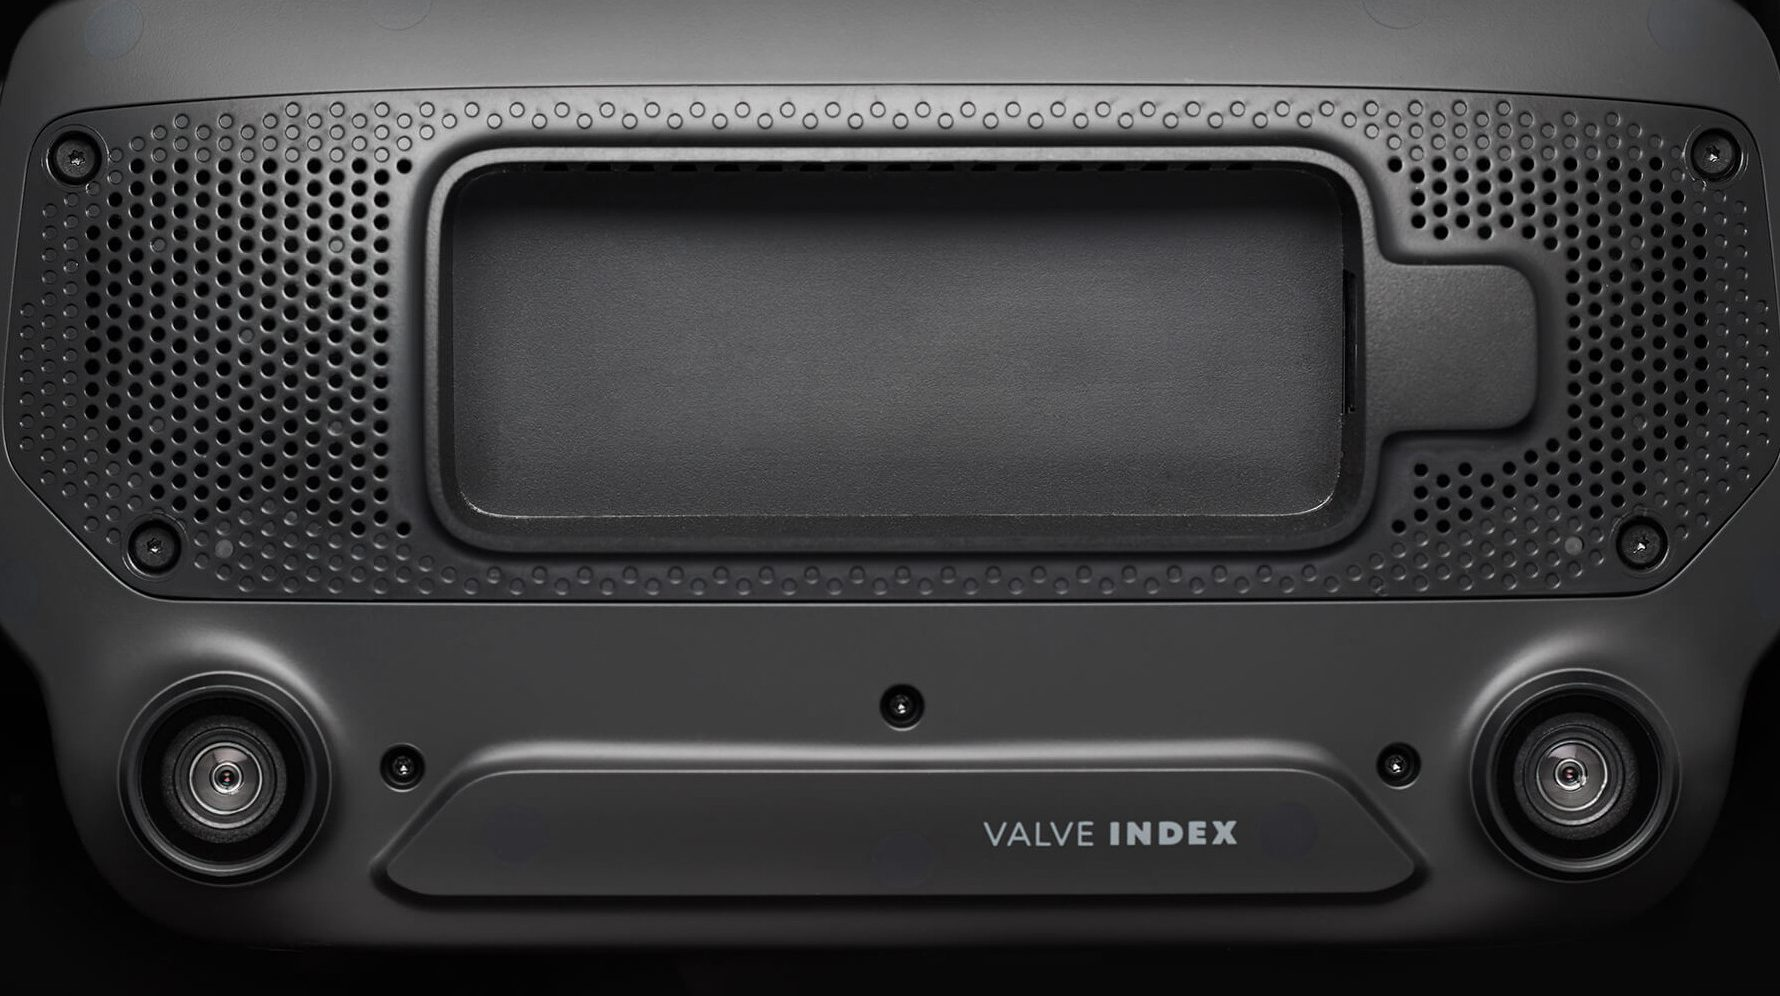 Want To Support Hacker-friendly Hardware Design? Follow Valve's Example